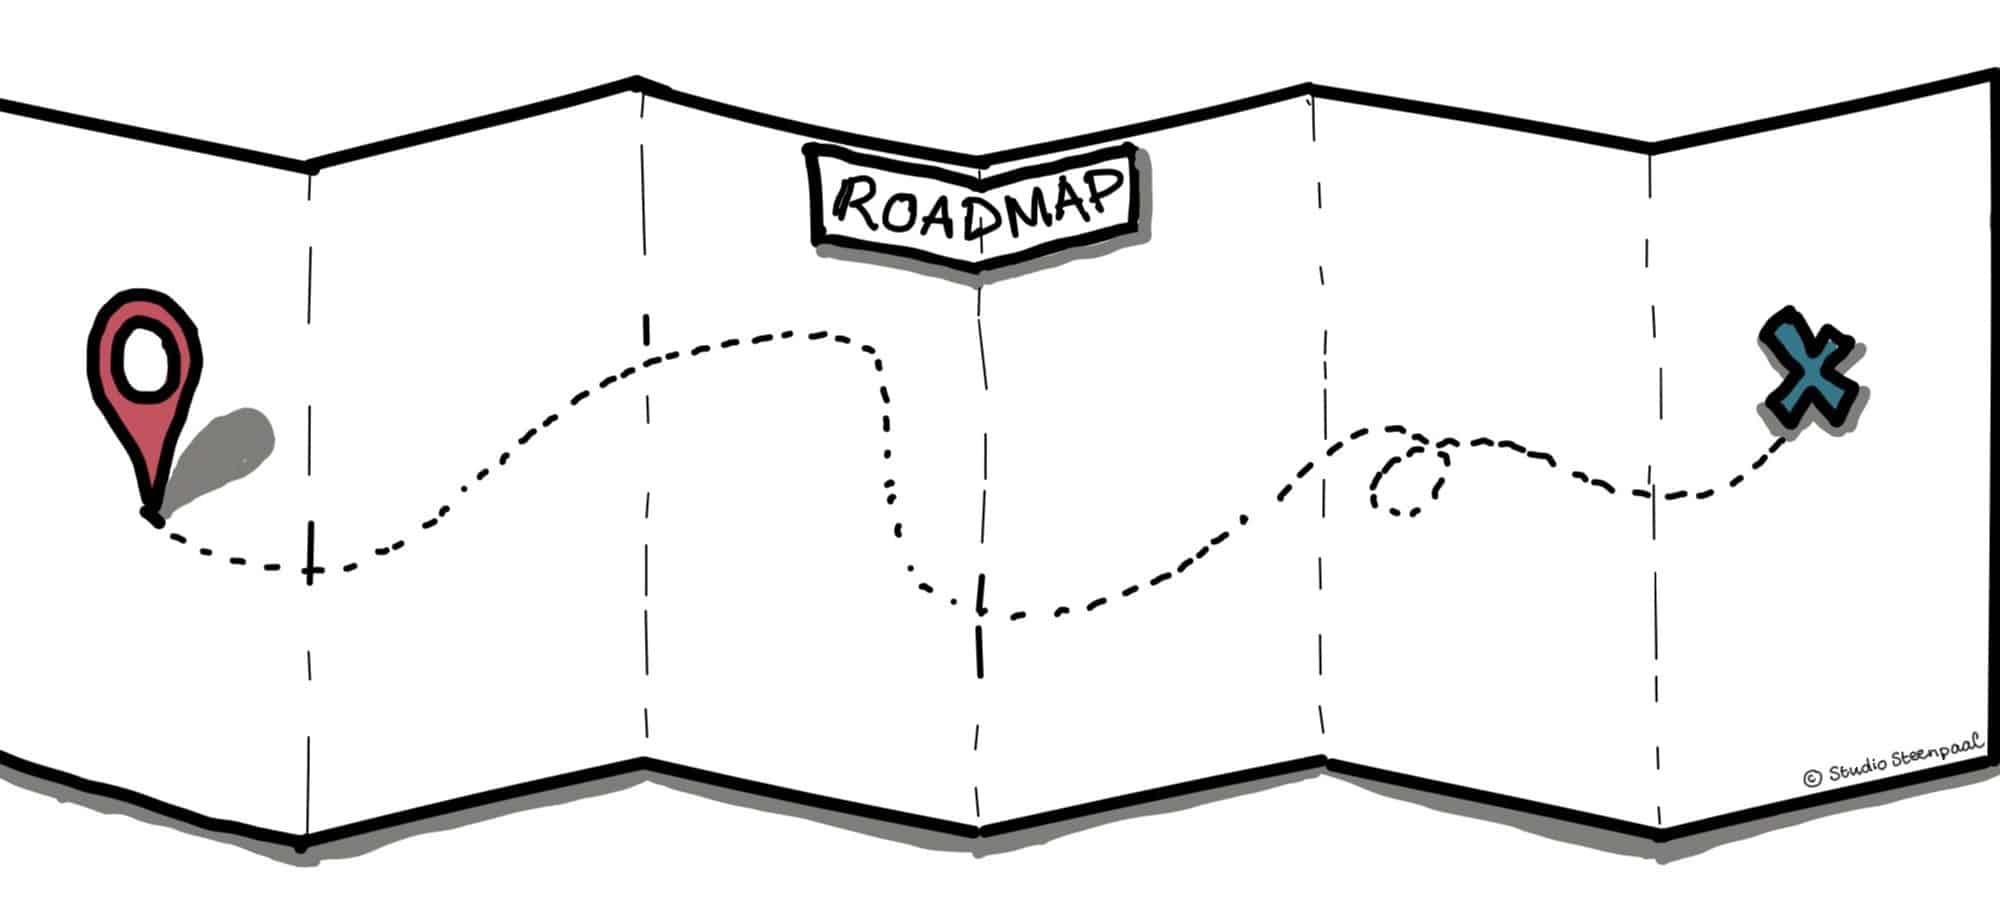 Roadmap template Studio Steenpaal